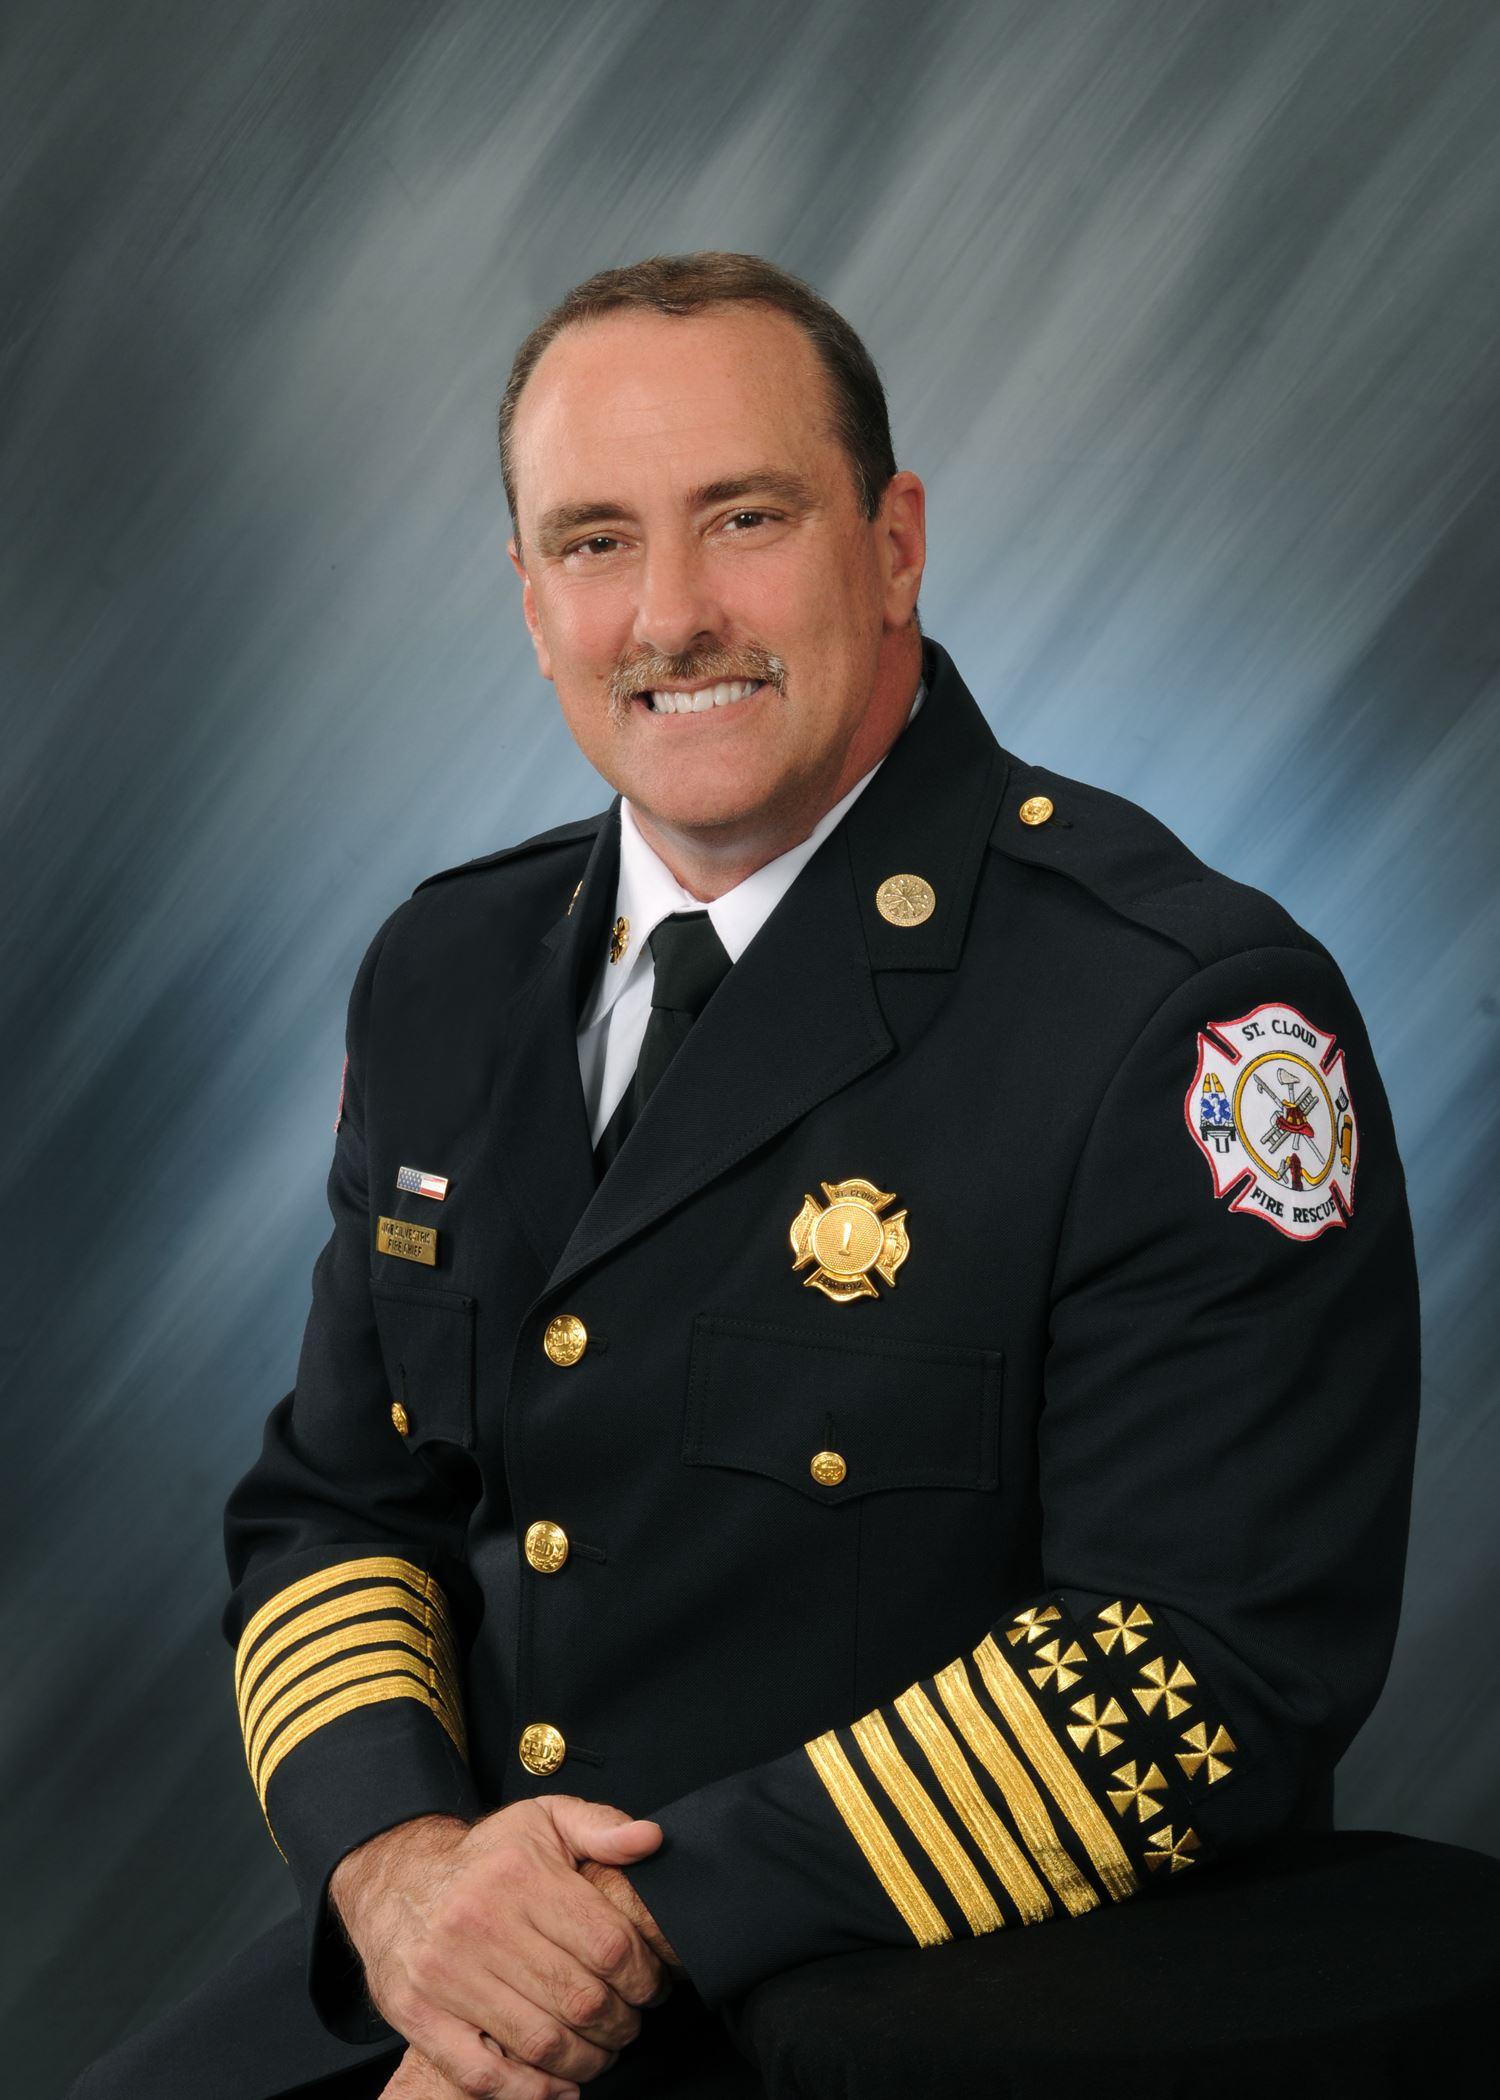 Fire Chief Joe Silvestris